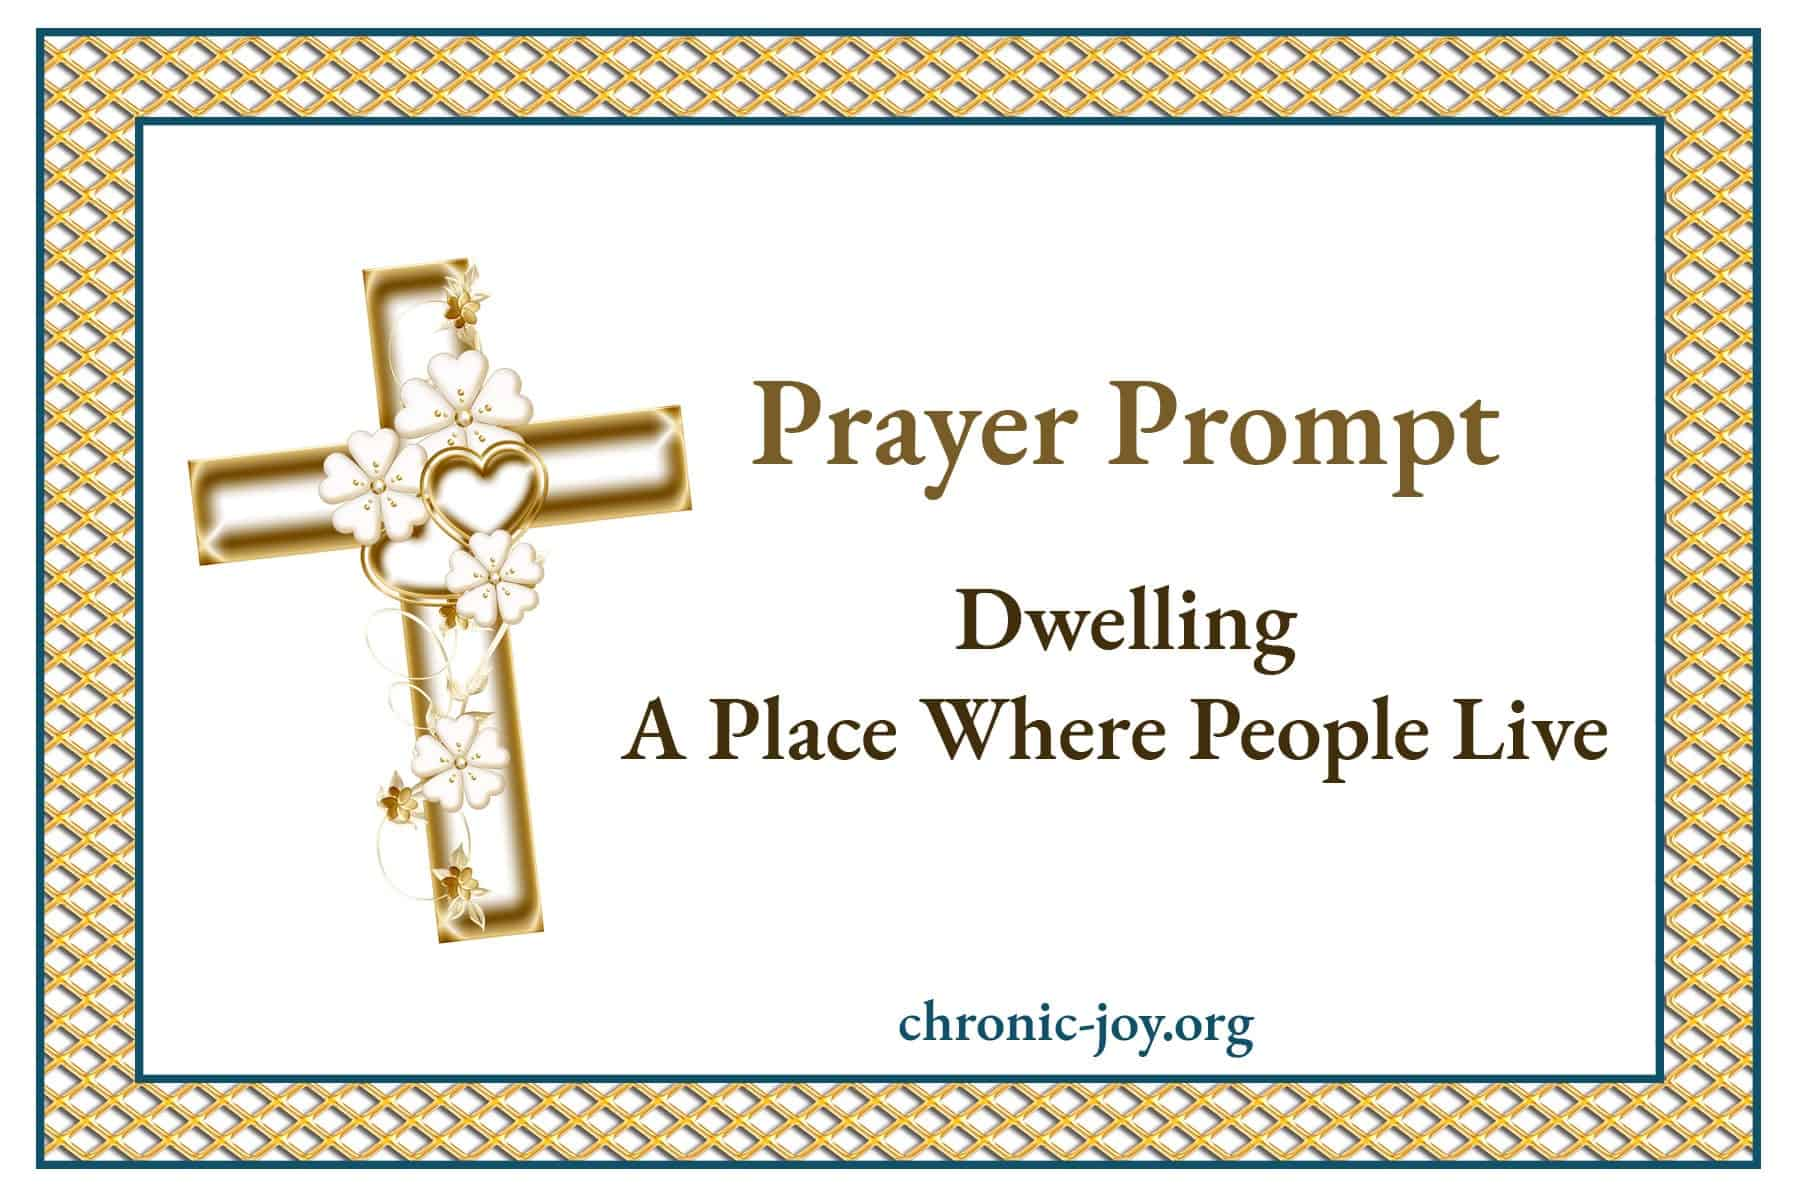 Prayer Prompt - Dwelling - A Place Where People Live